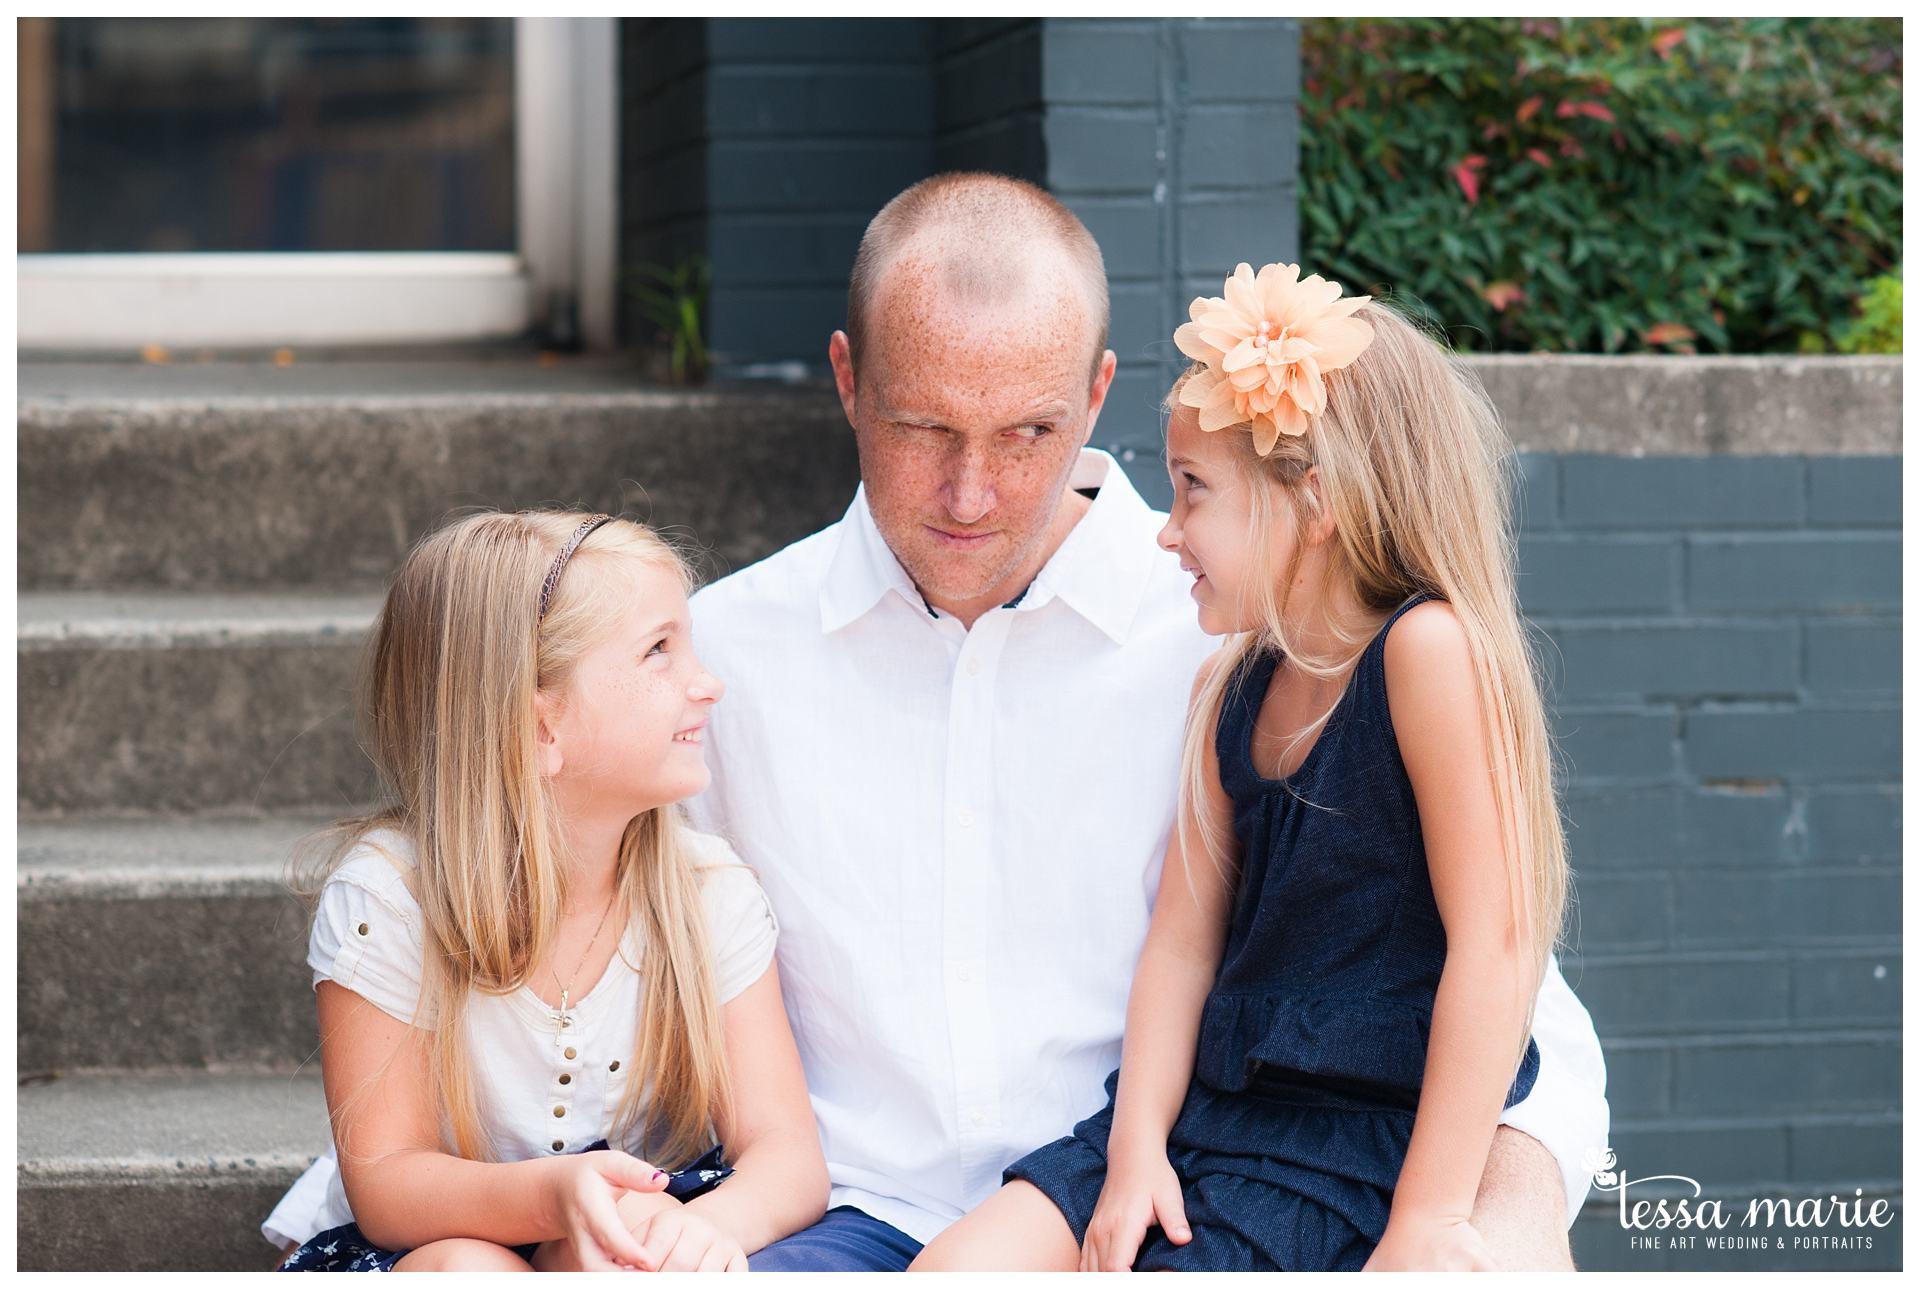 tessa_marie_weddings_legacy_story_focused_wedding_pictures_atlanta_wedding_photographer_family_pictures_portrait_Fine_art_memories_mothers_day_spring_moments_0272